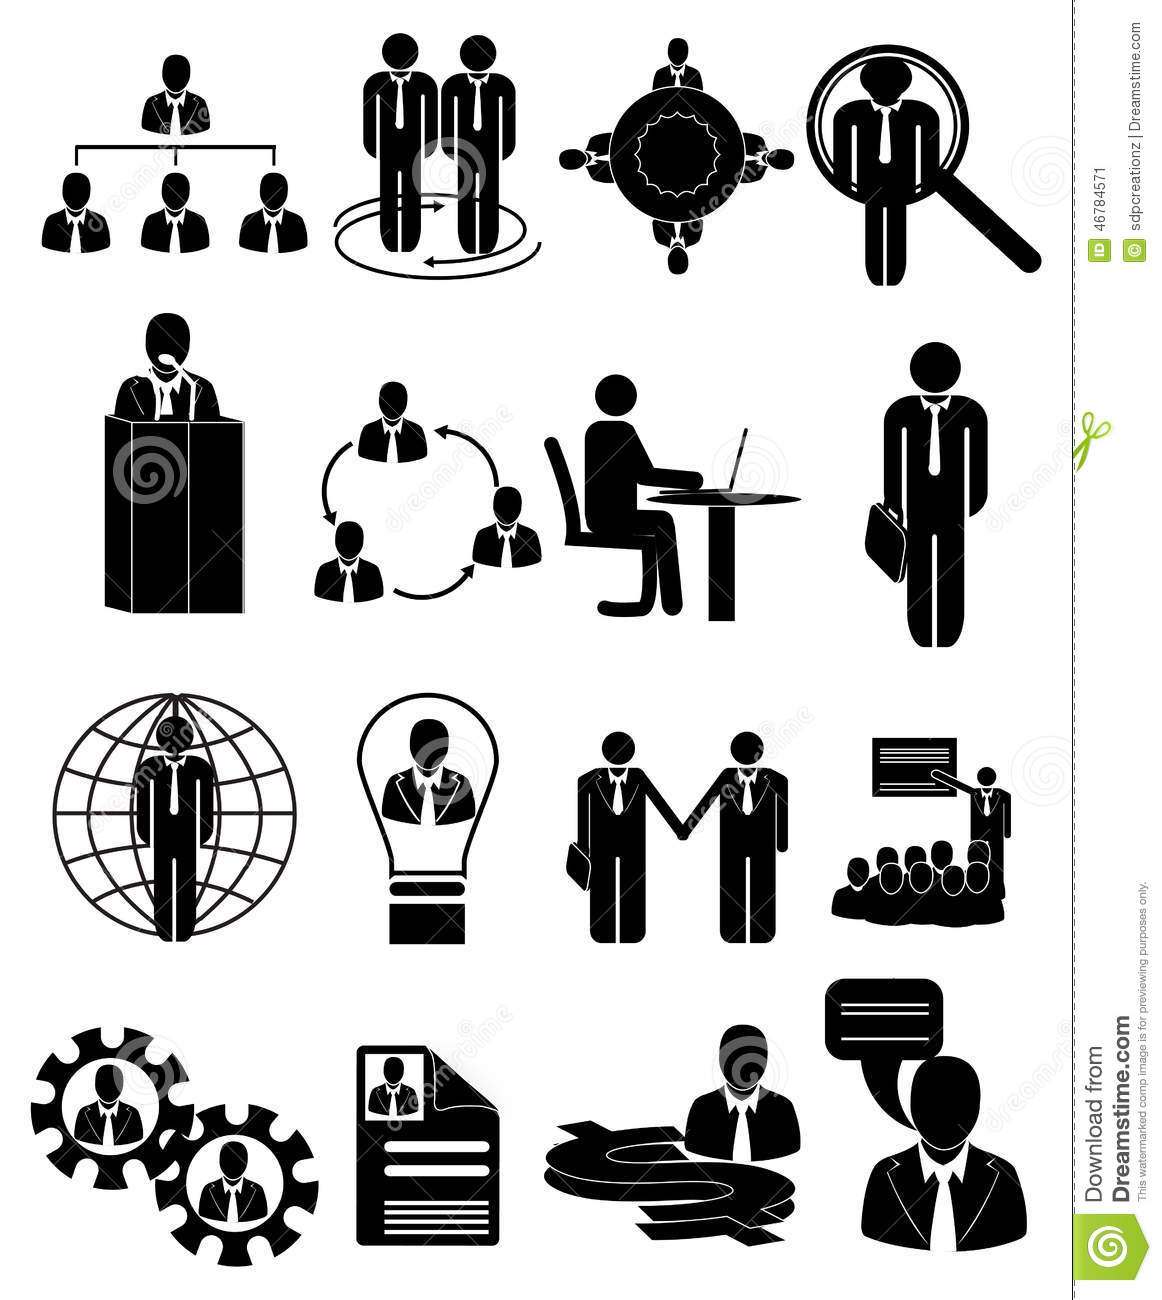 Human Resources Clipart Black And White.